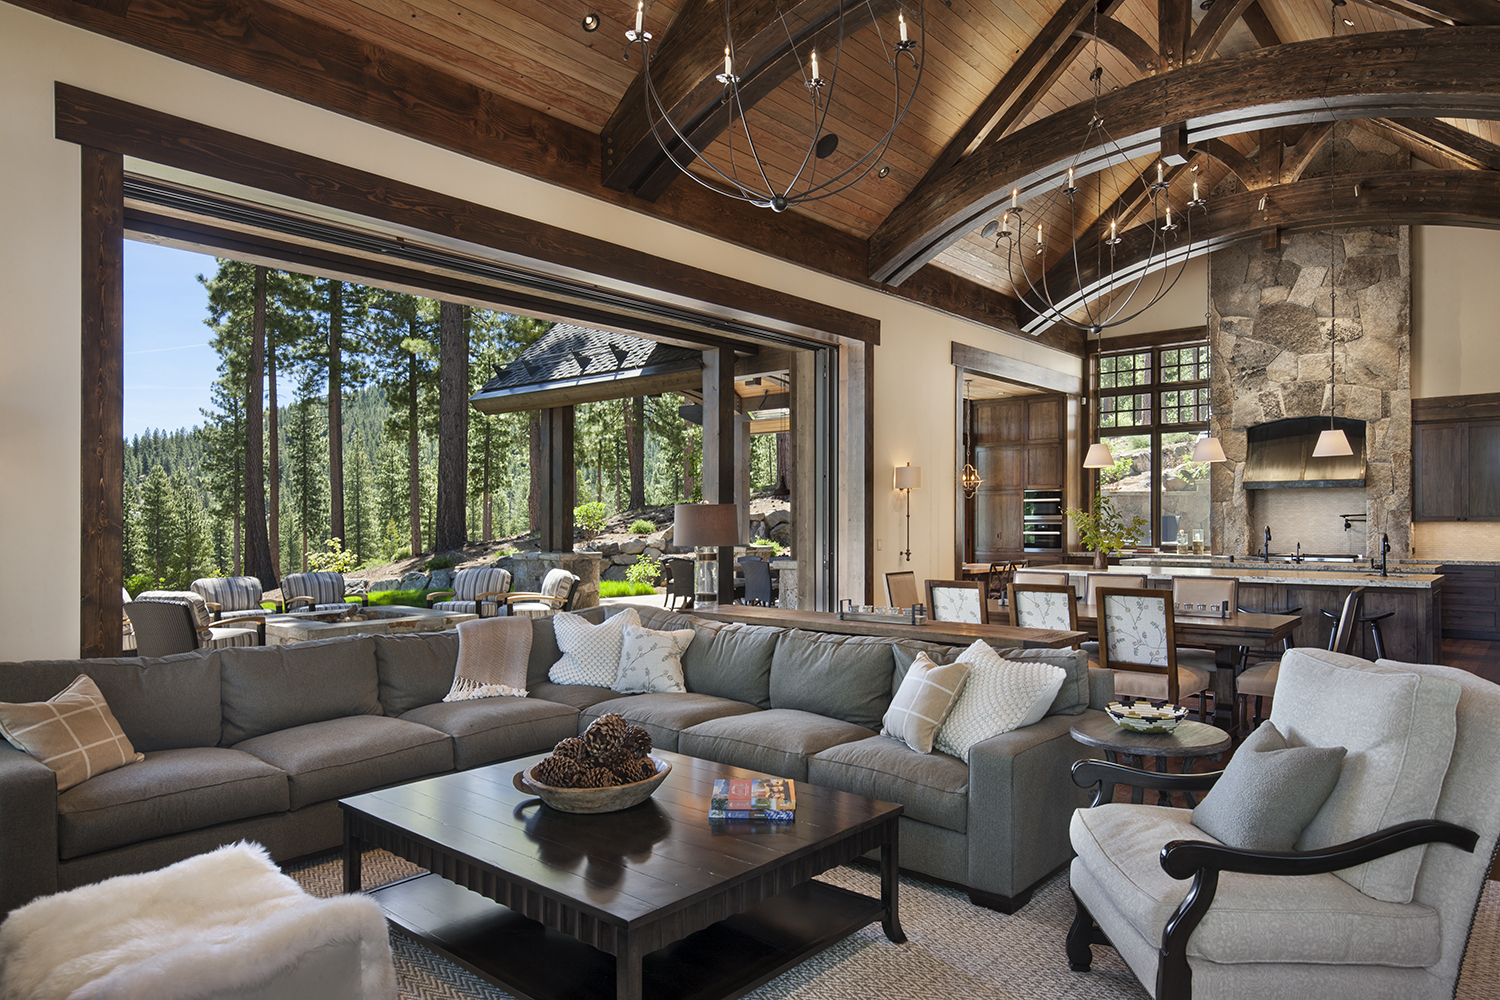 Lot 640_Great Room_Weilans_Outdoor Living Space_Arched Trusses.jpg